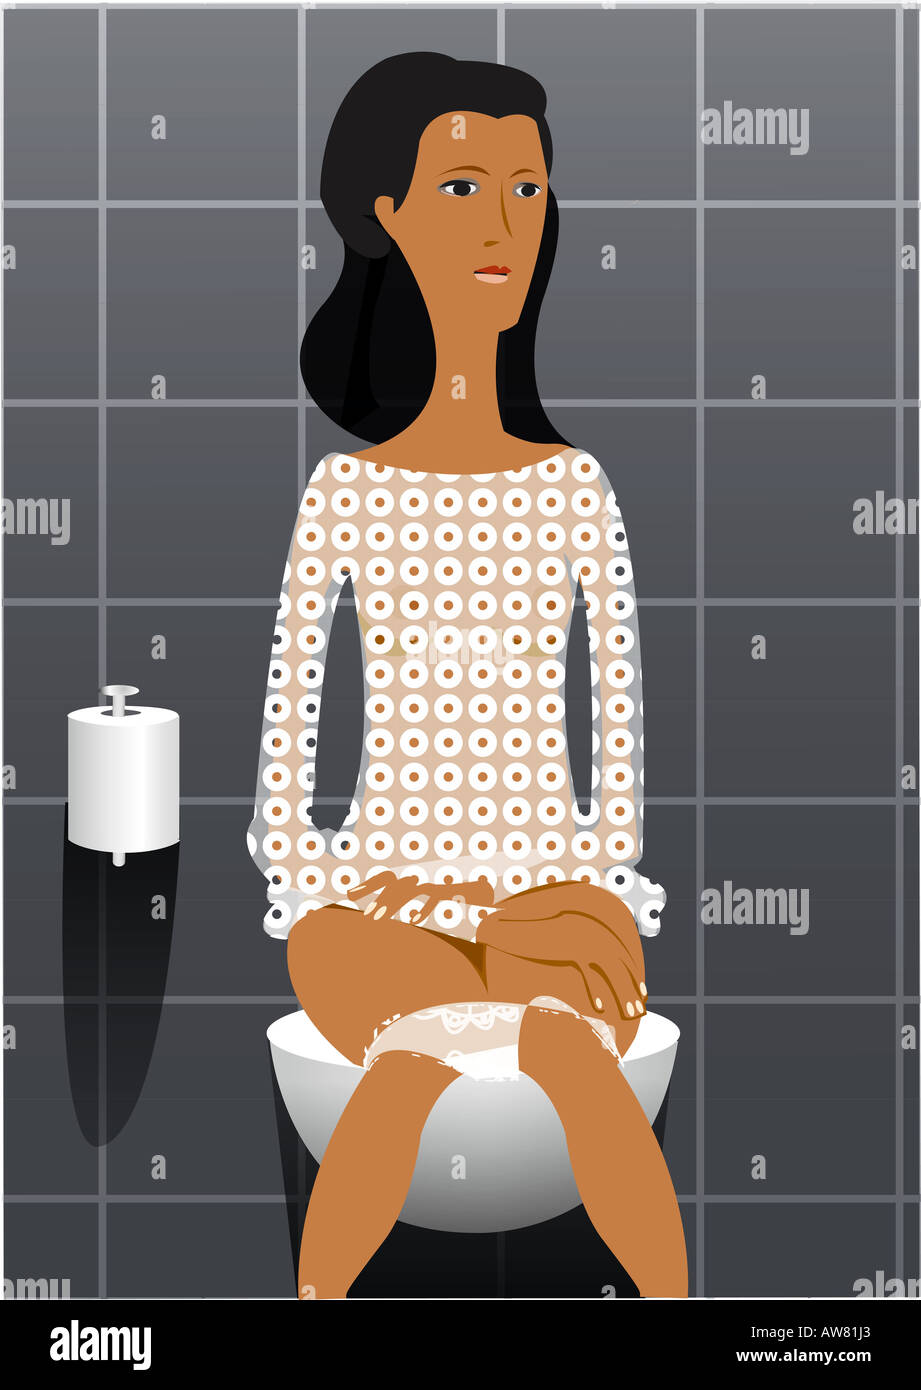 Well understand girl sitting on toilet peeing criticism advise